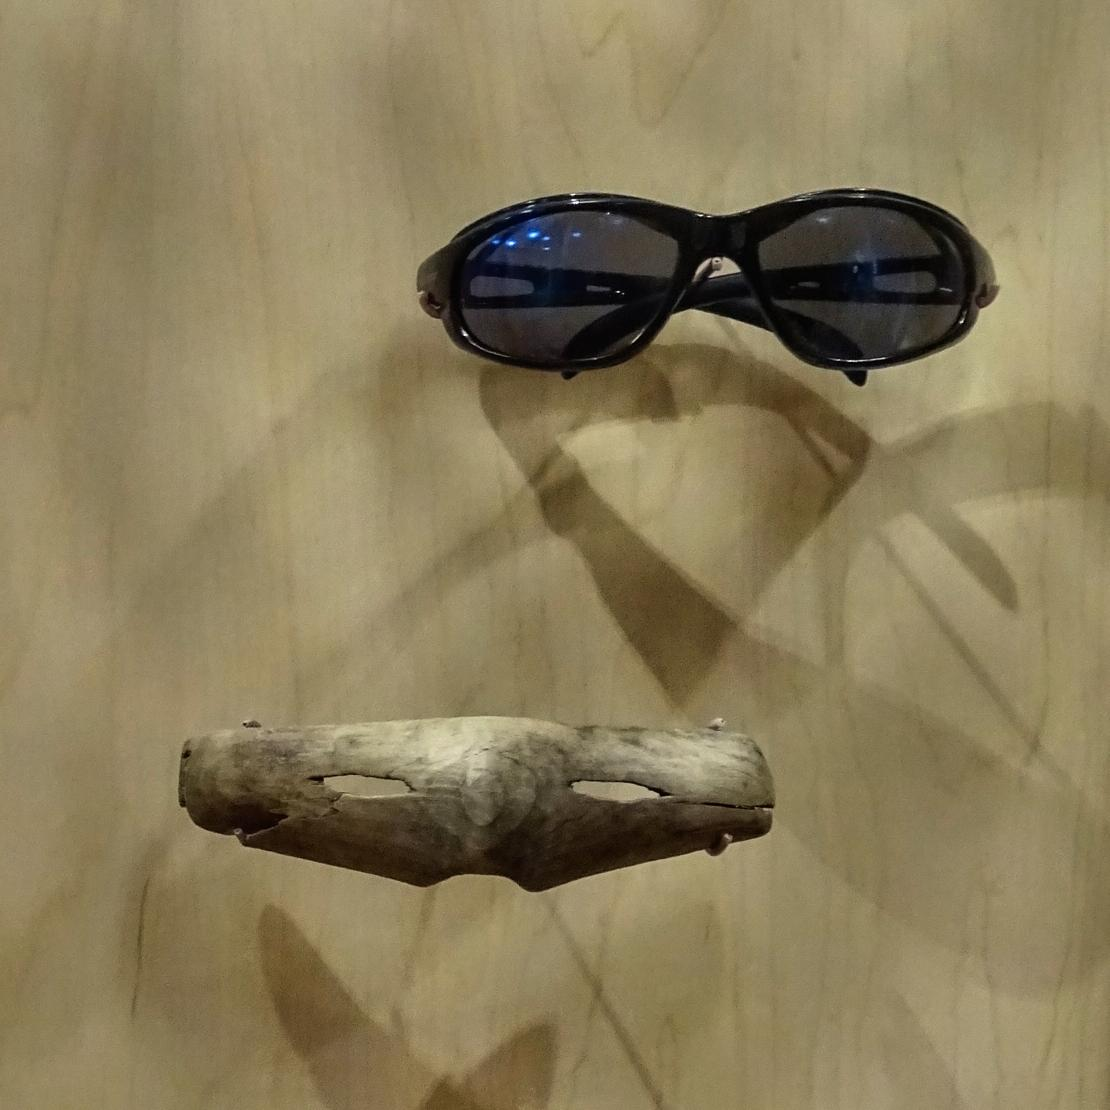 Eye protection, now and then. Inupiat Heritage Center #museum #eyes #protection #goggles #sunglasses #eyewear #glare #alaska<br>http://pic.twitter.com/86BQpOxl19